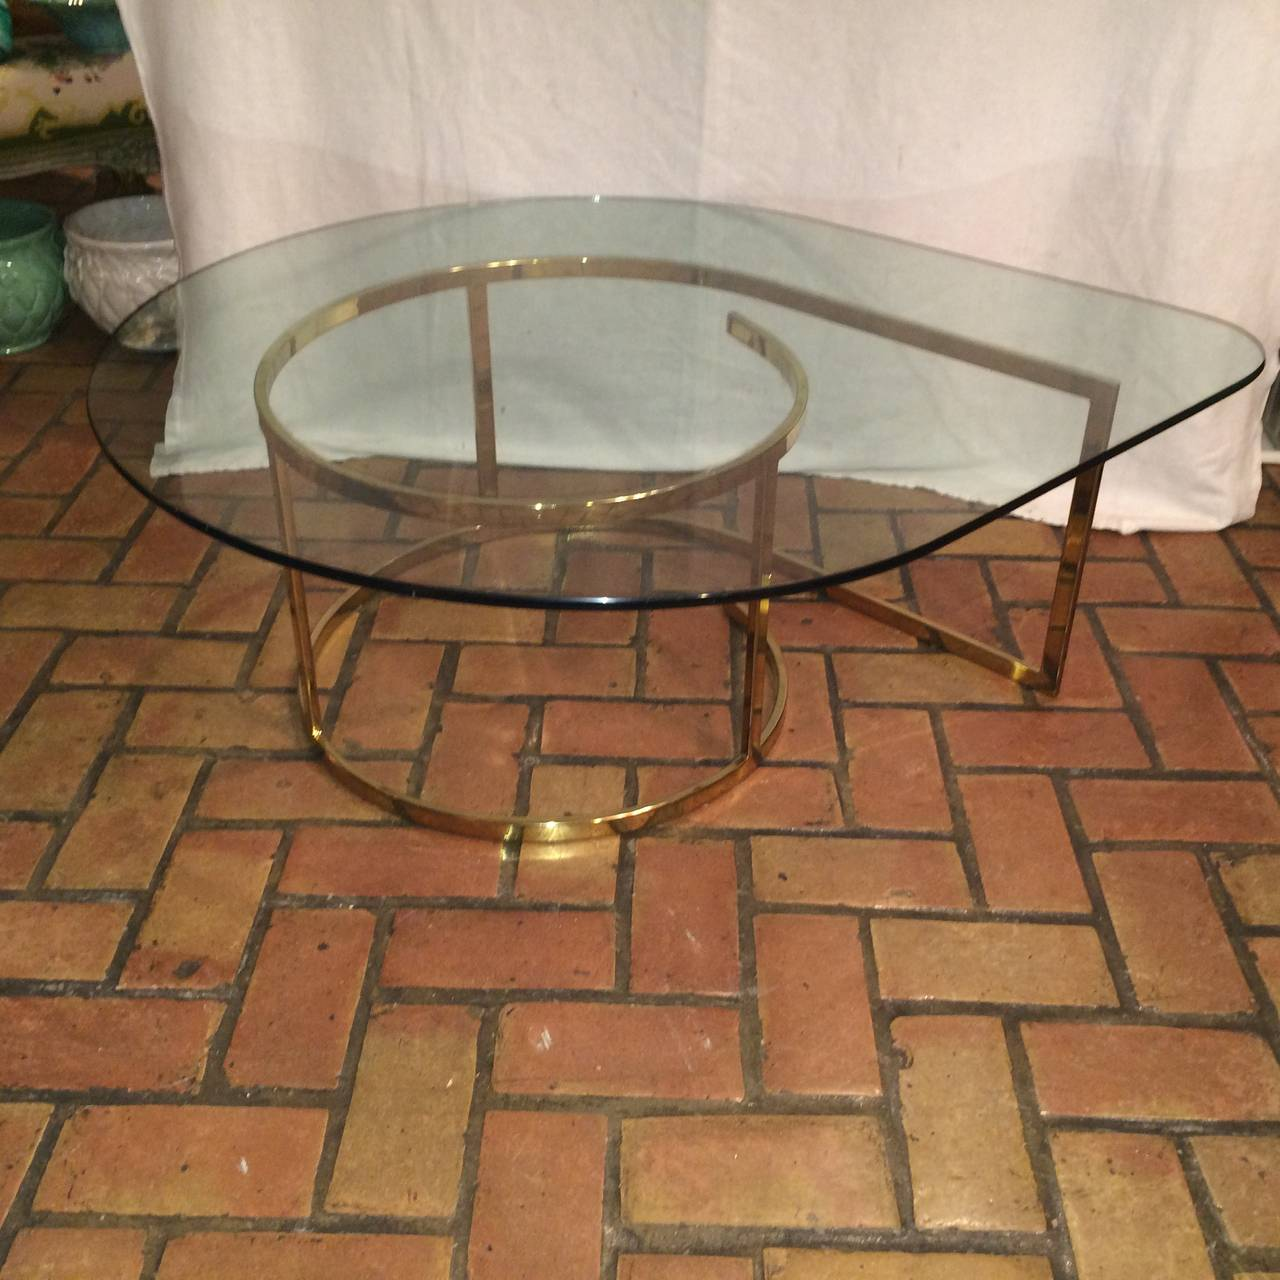 Hollywood Regency brass and glass coffee table. This elegant and sophisticated teardrop shaped table will complement any living room.